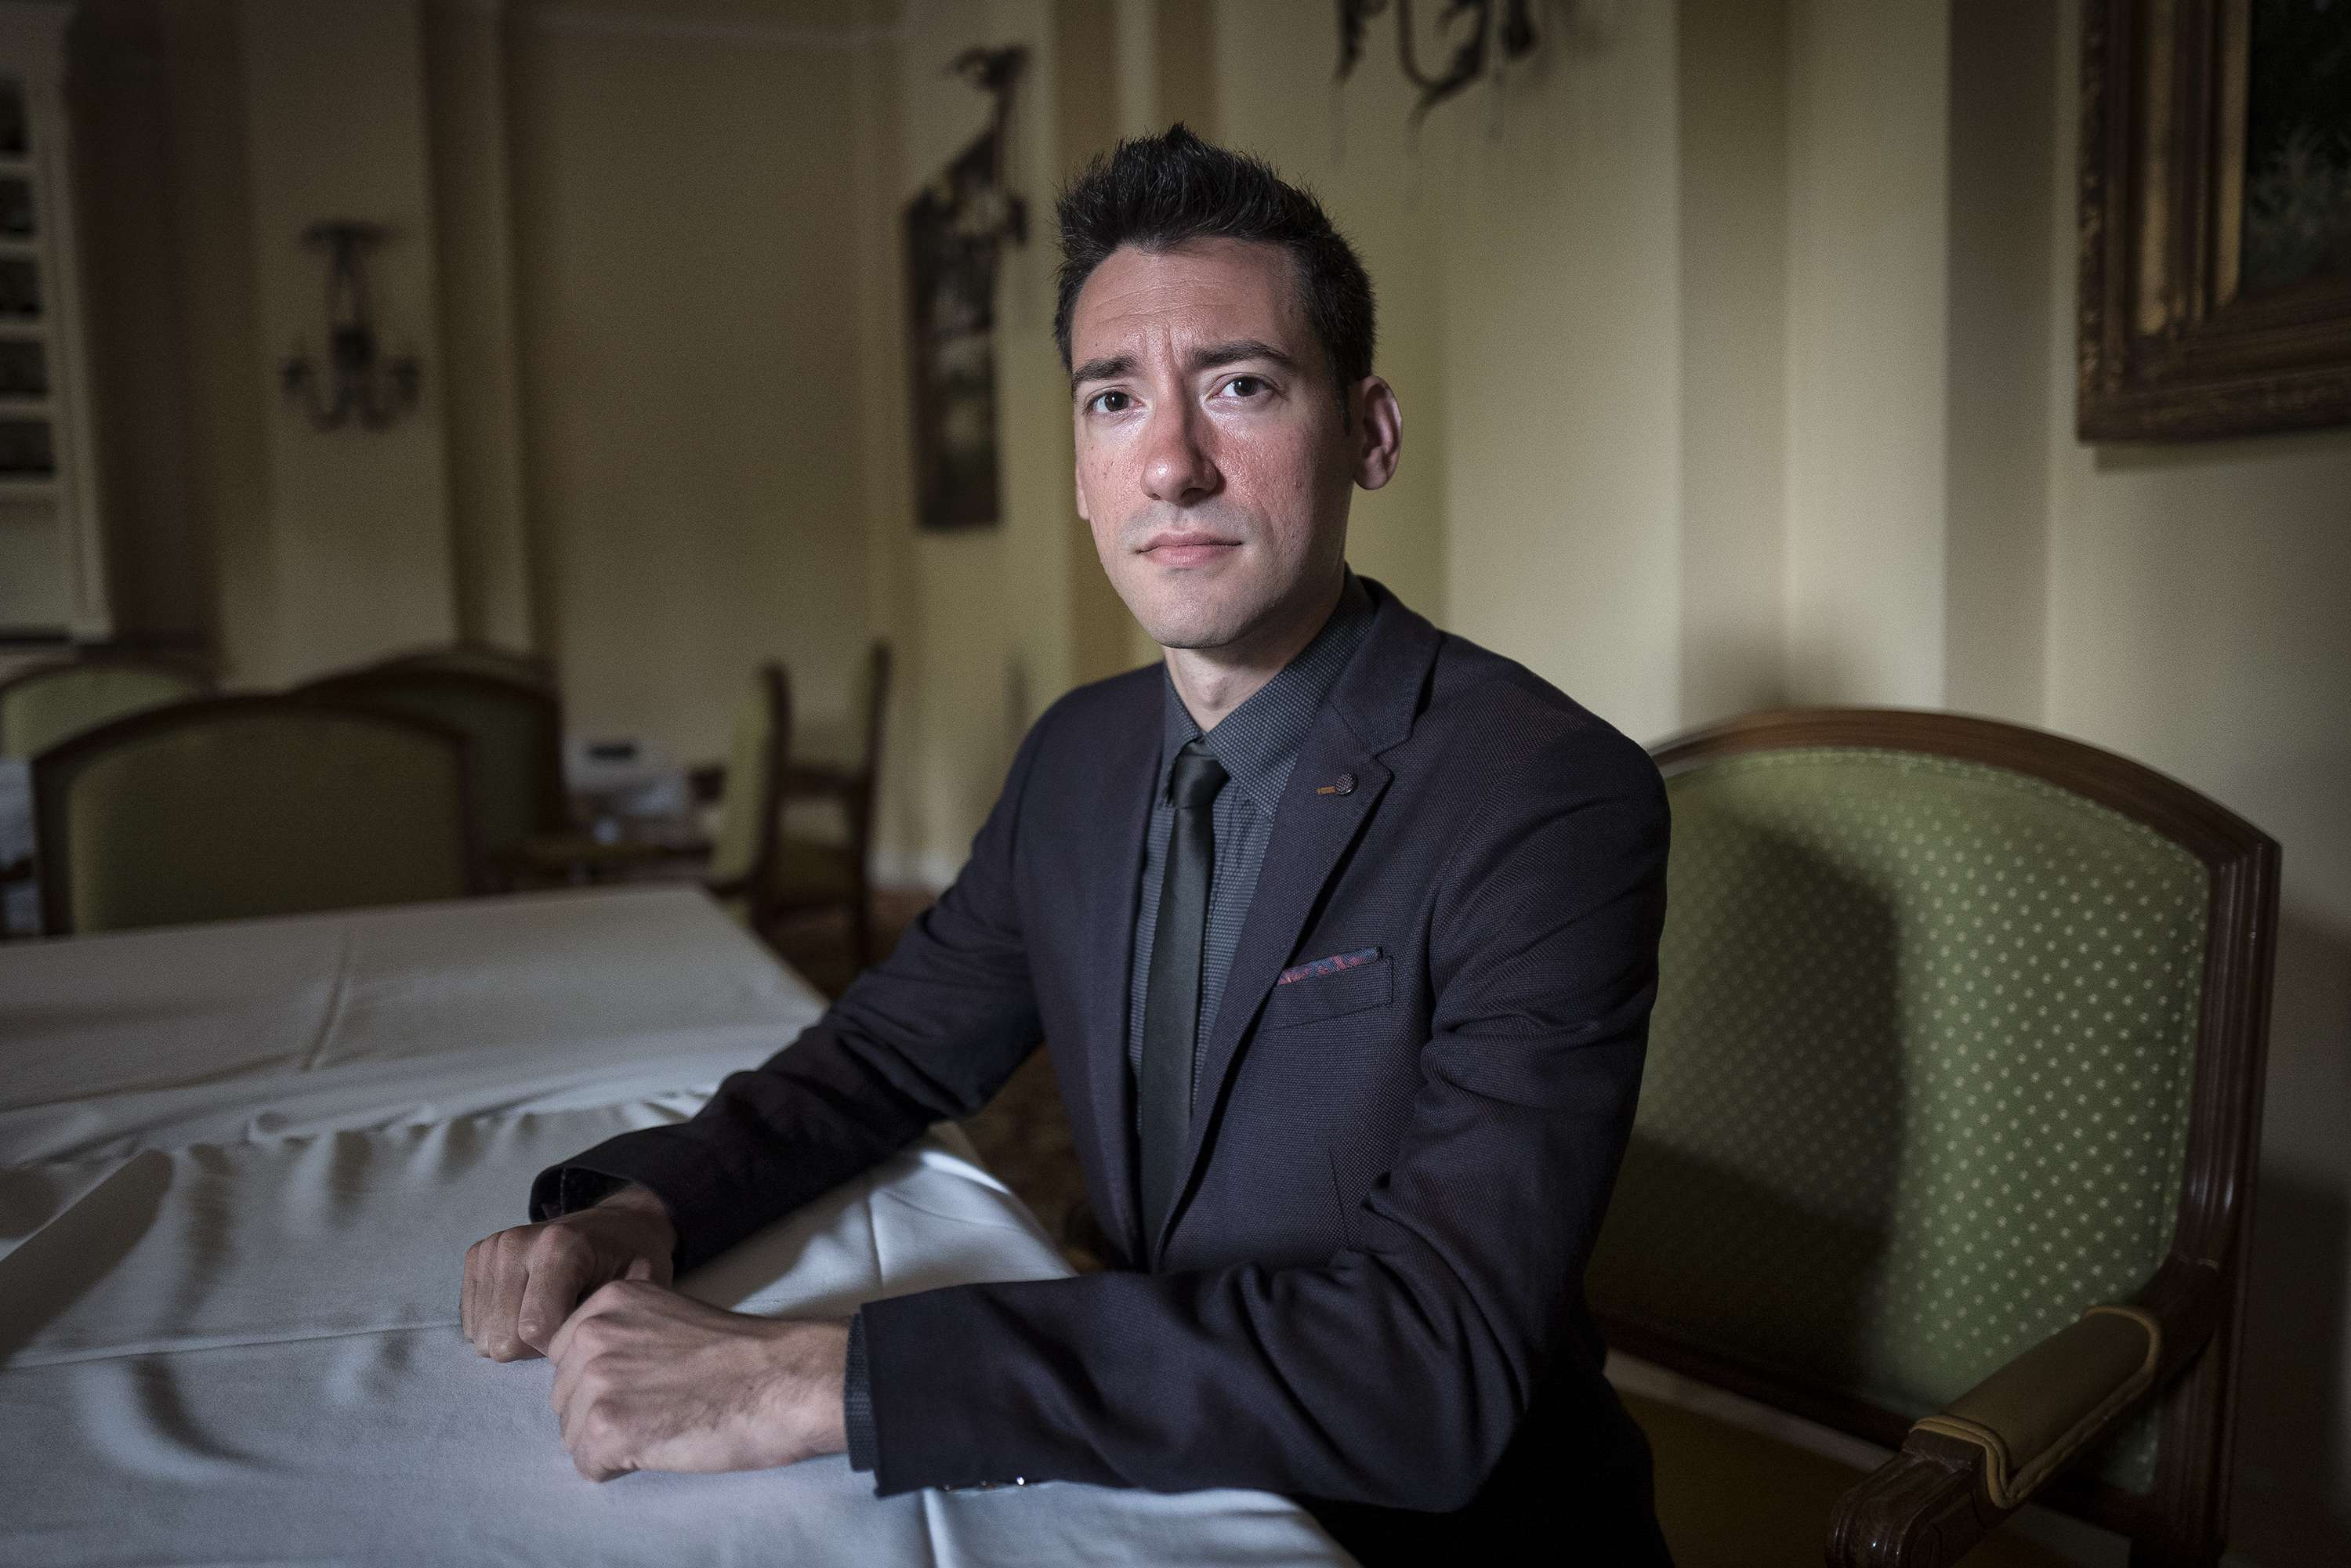 David Daleiden, founder of The Center for Medical Progress. (Photo by Charles Ommanney/The Washington Post)